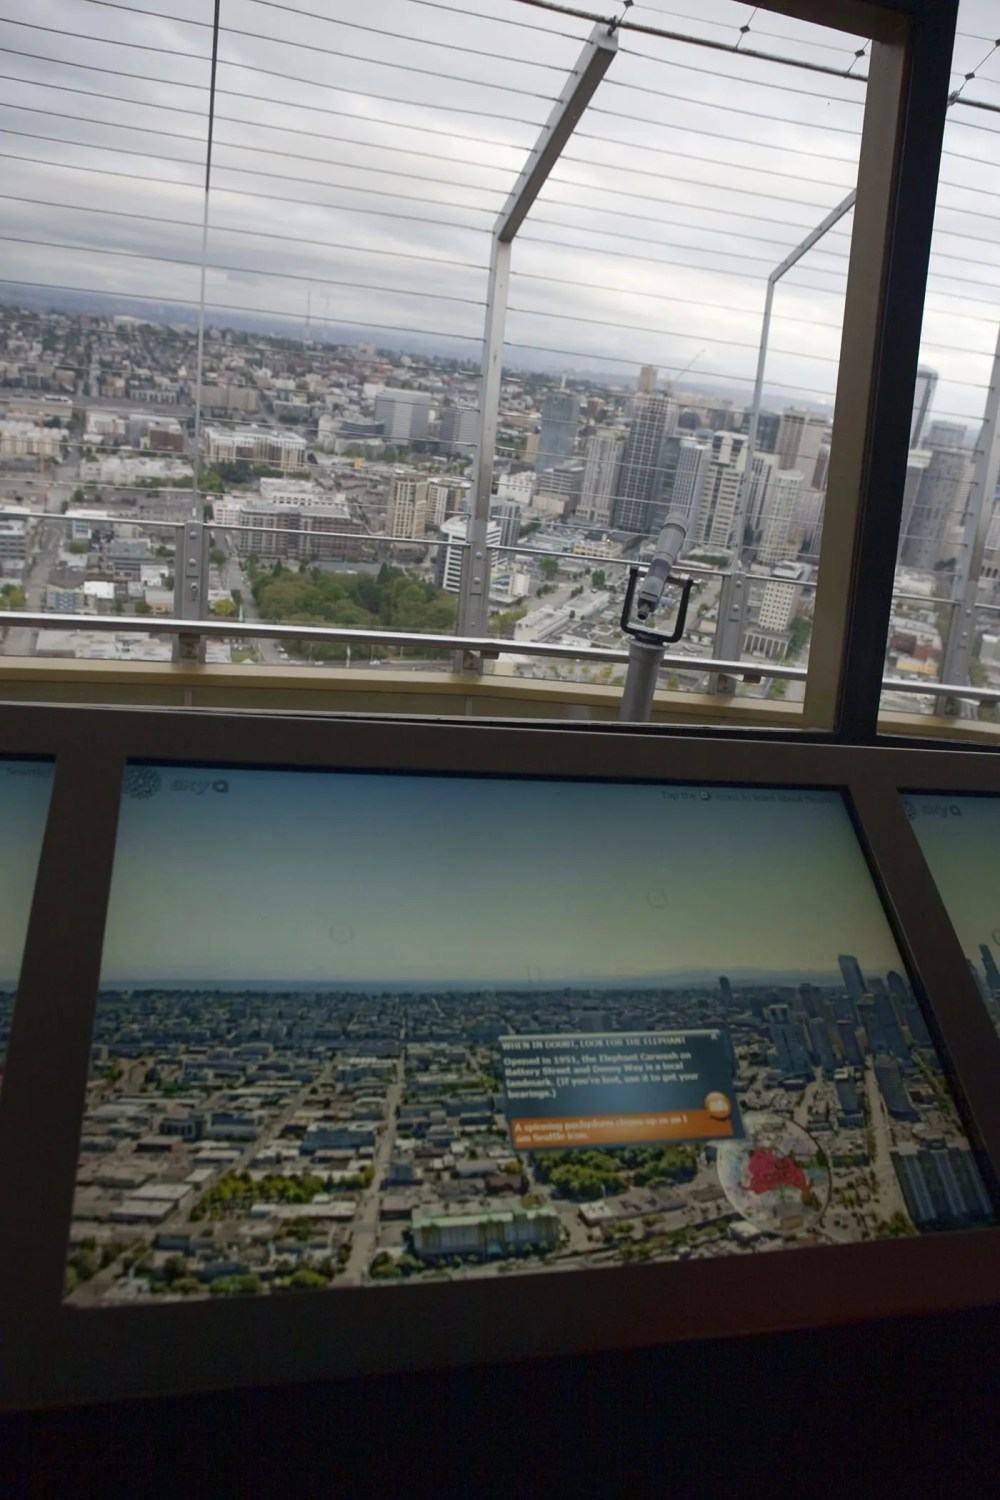 View from the inside the Space Needle in Seattle, Washington.